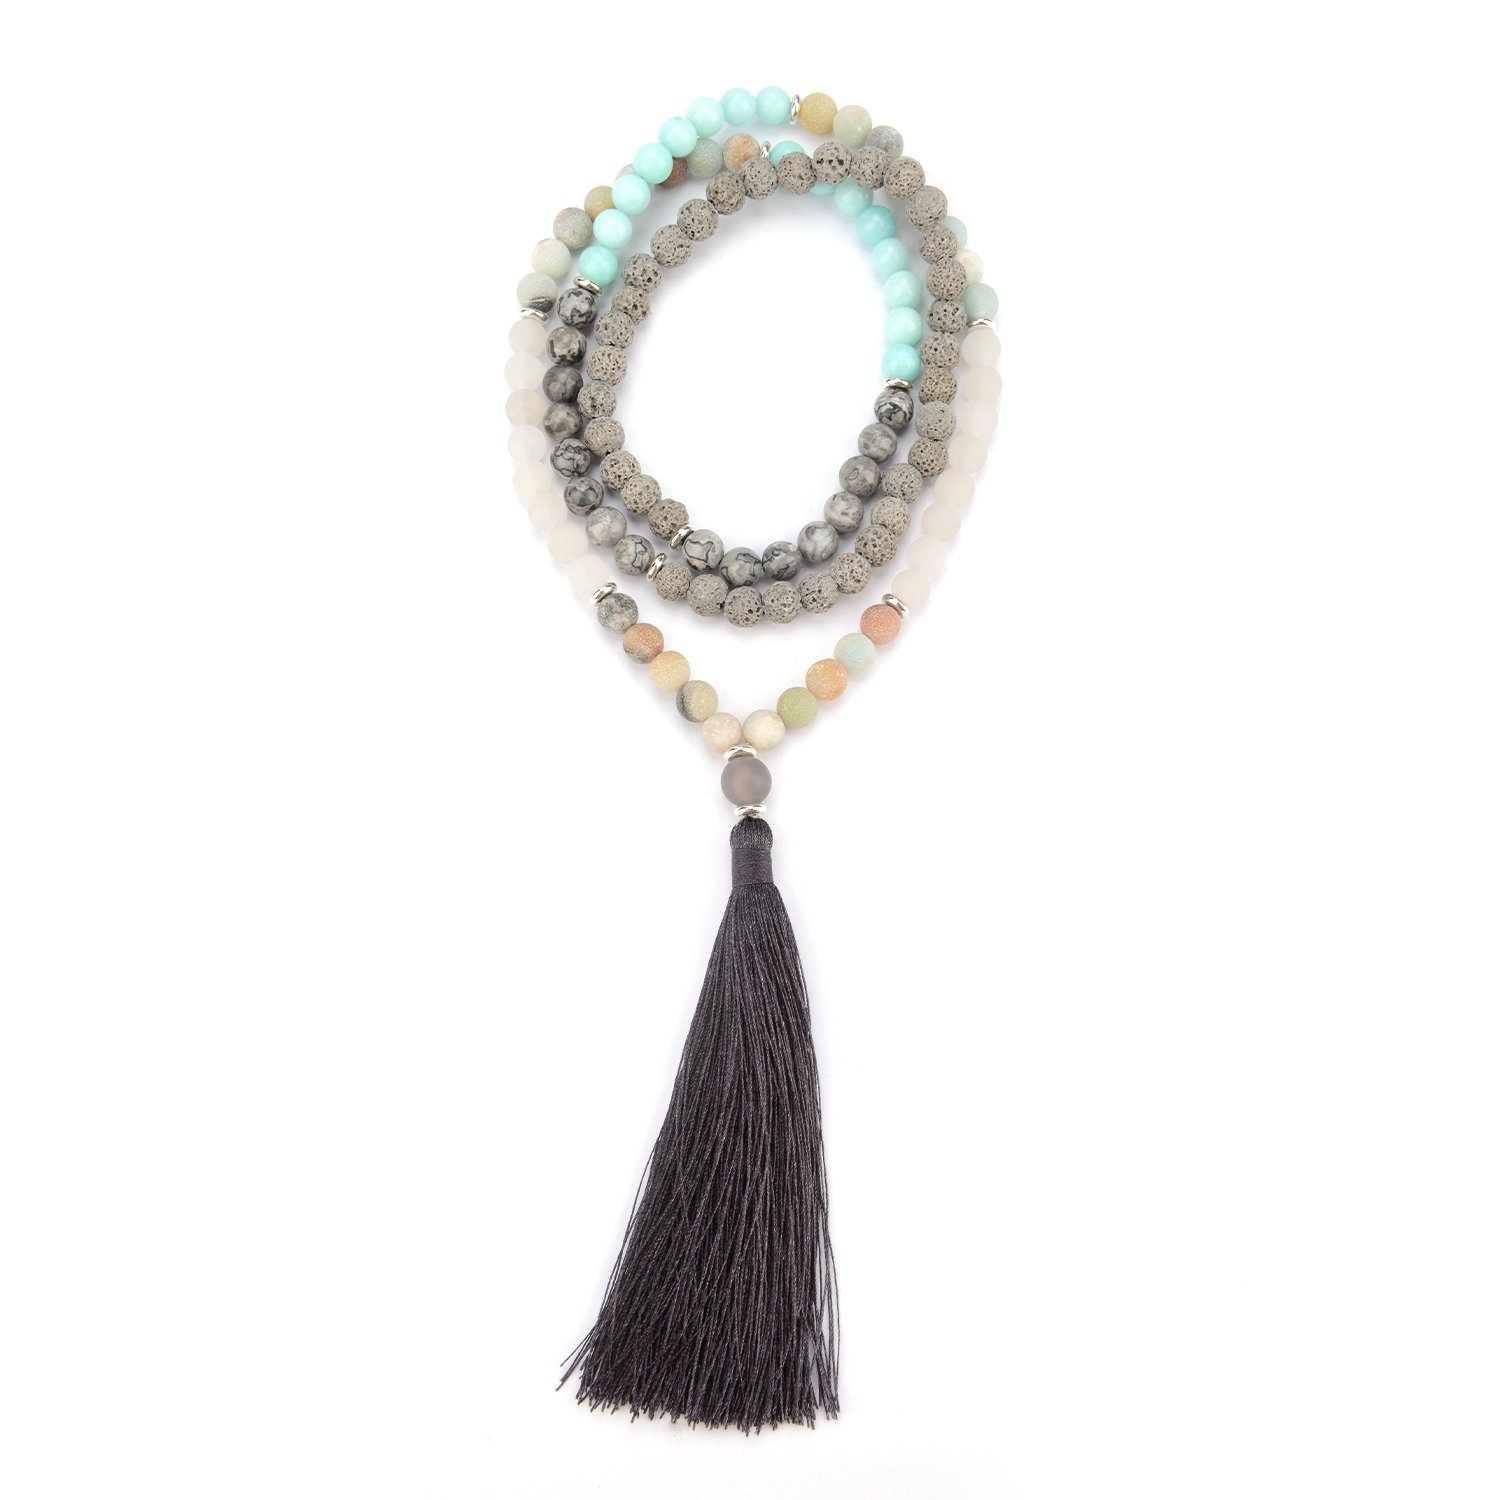 M&B Expressions Grey Lavastone, Jasper and Amazonite Mala Yoga Necklace 8-10mm with108 Beads for Meditation and Healing